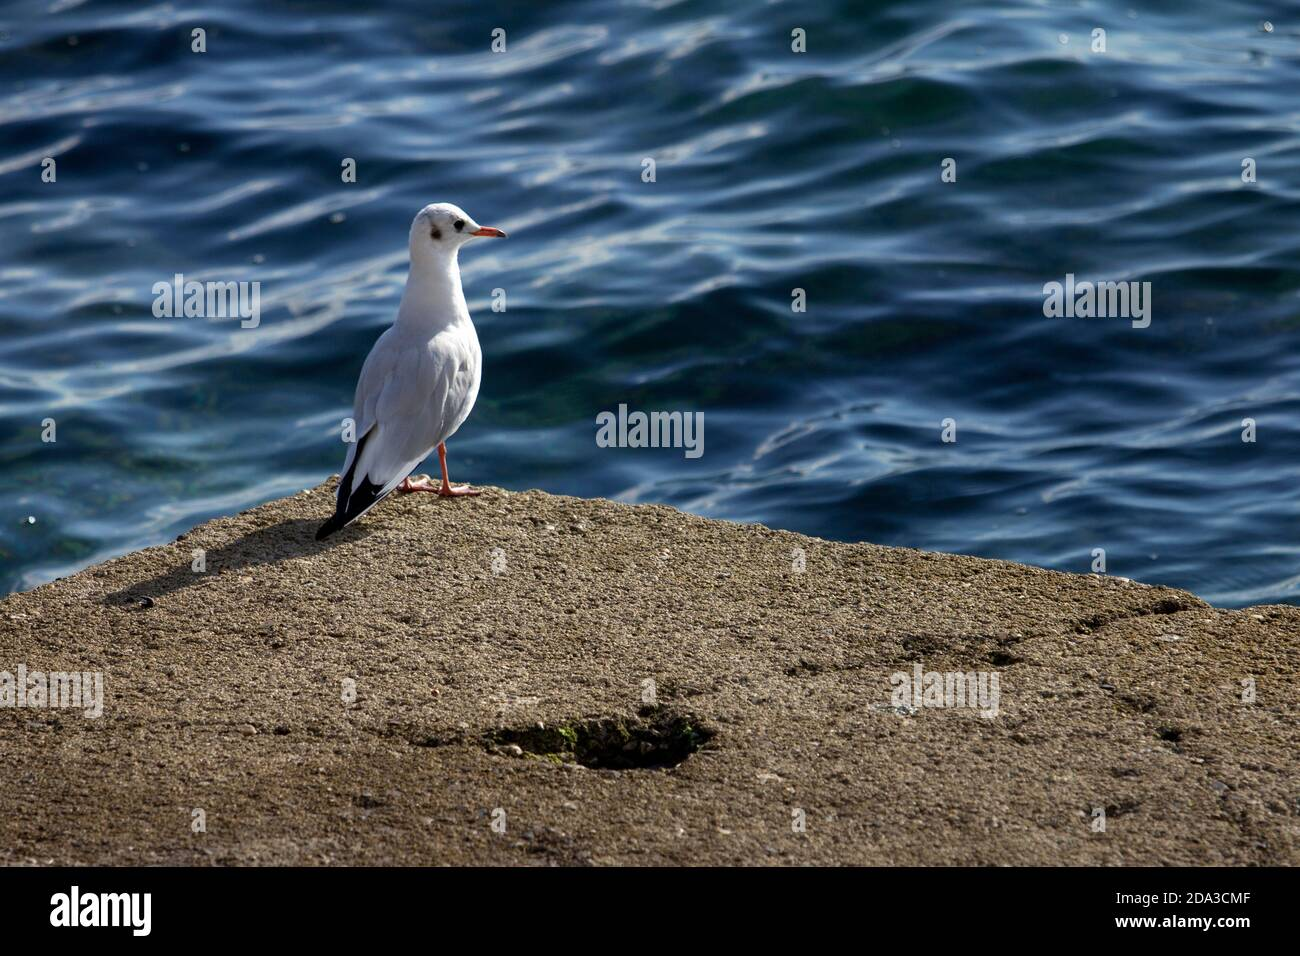 Bird and Nature. One single seagull is resting on the rock in front of the sea Stock Photo